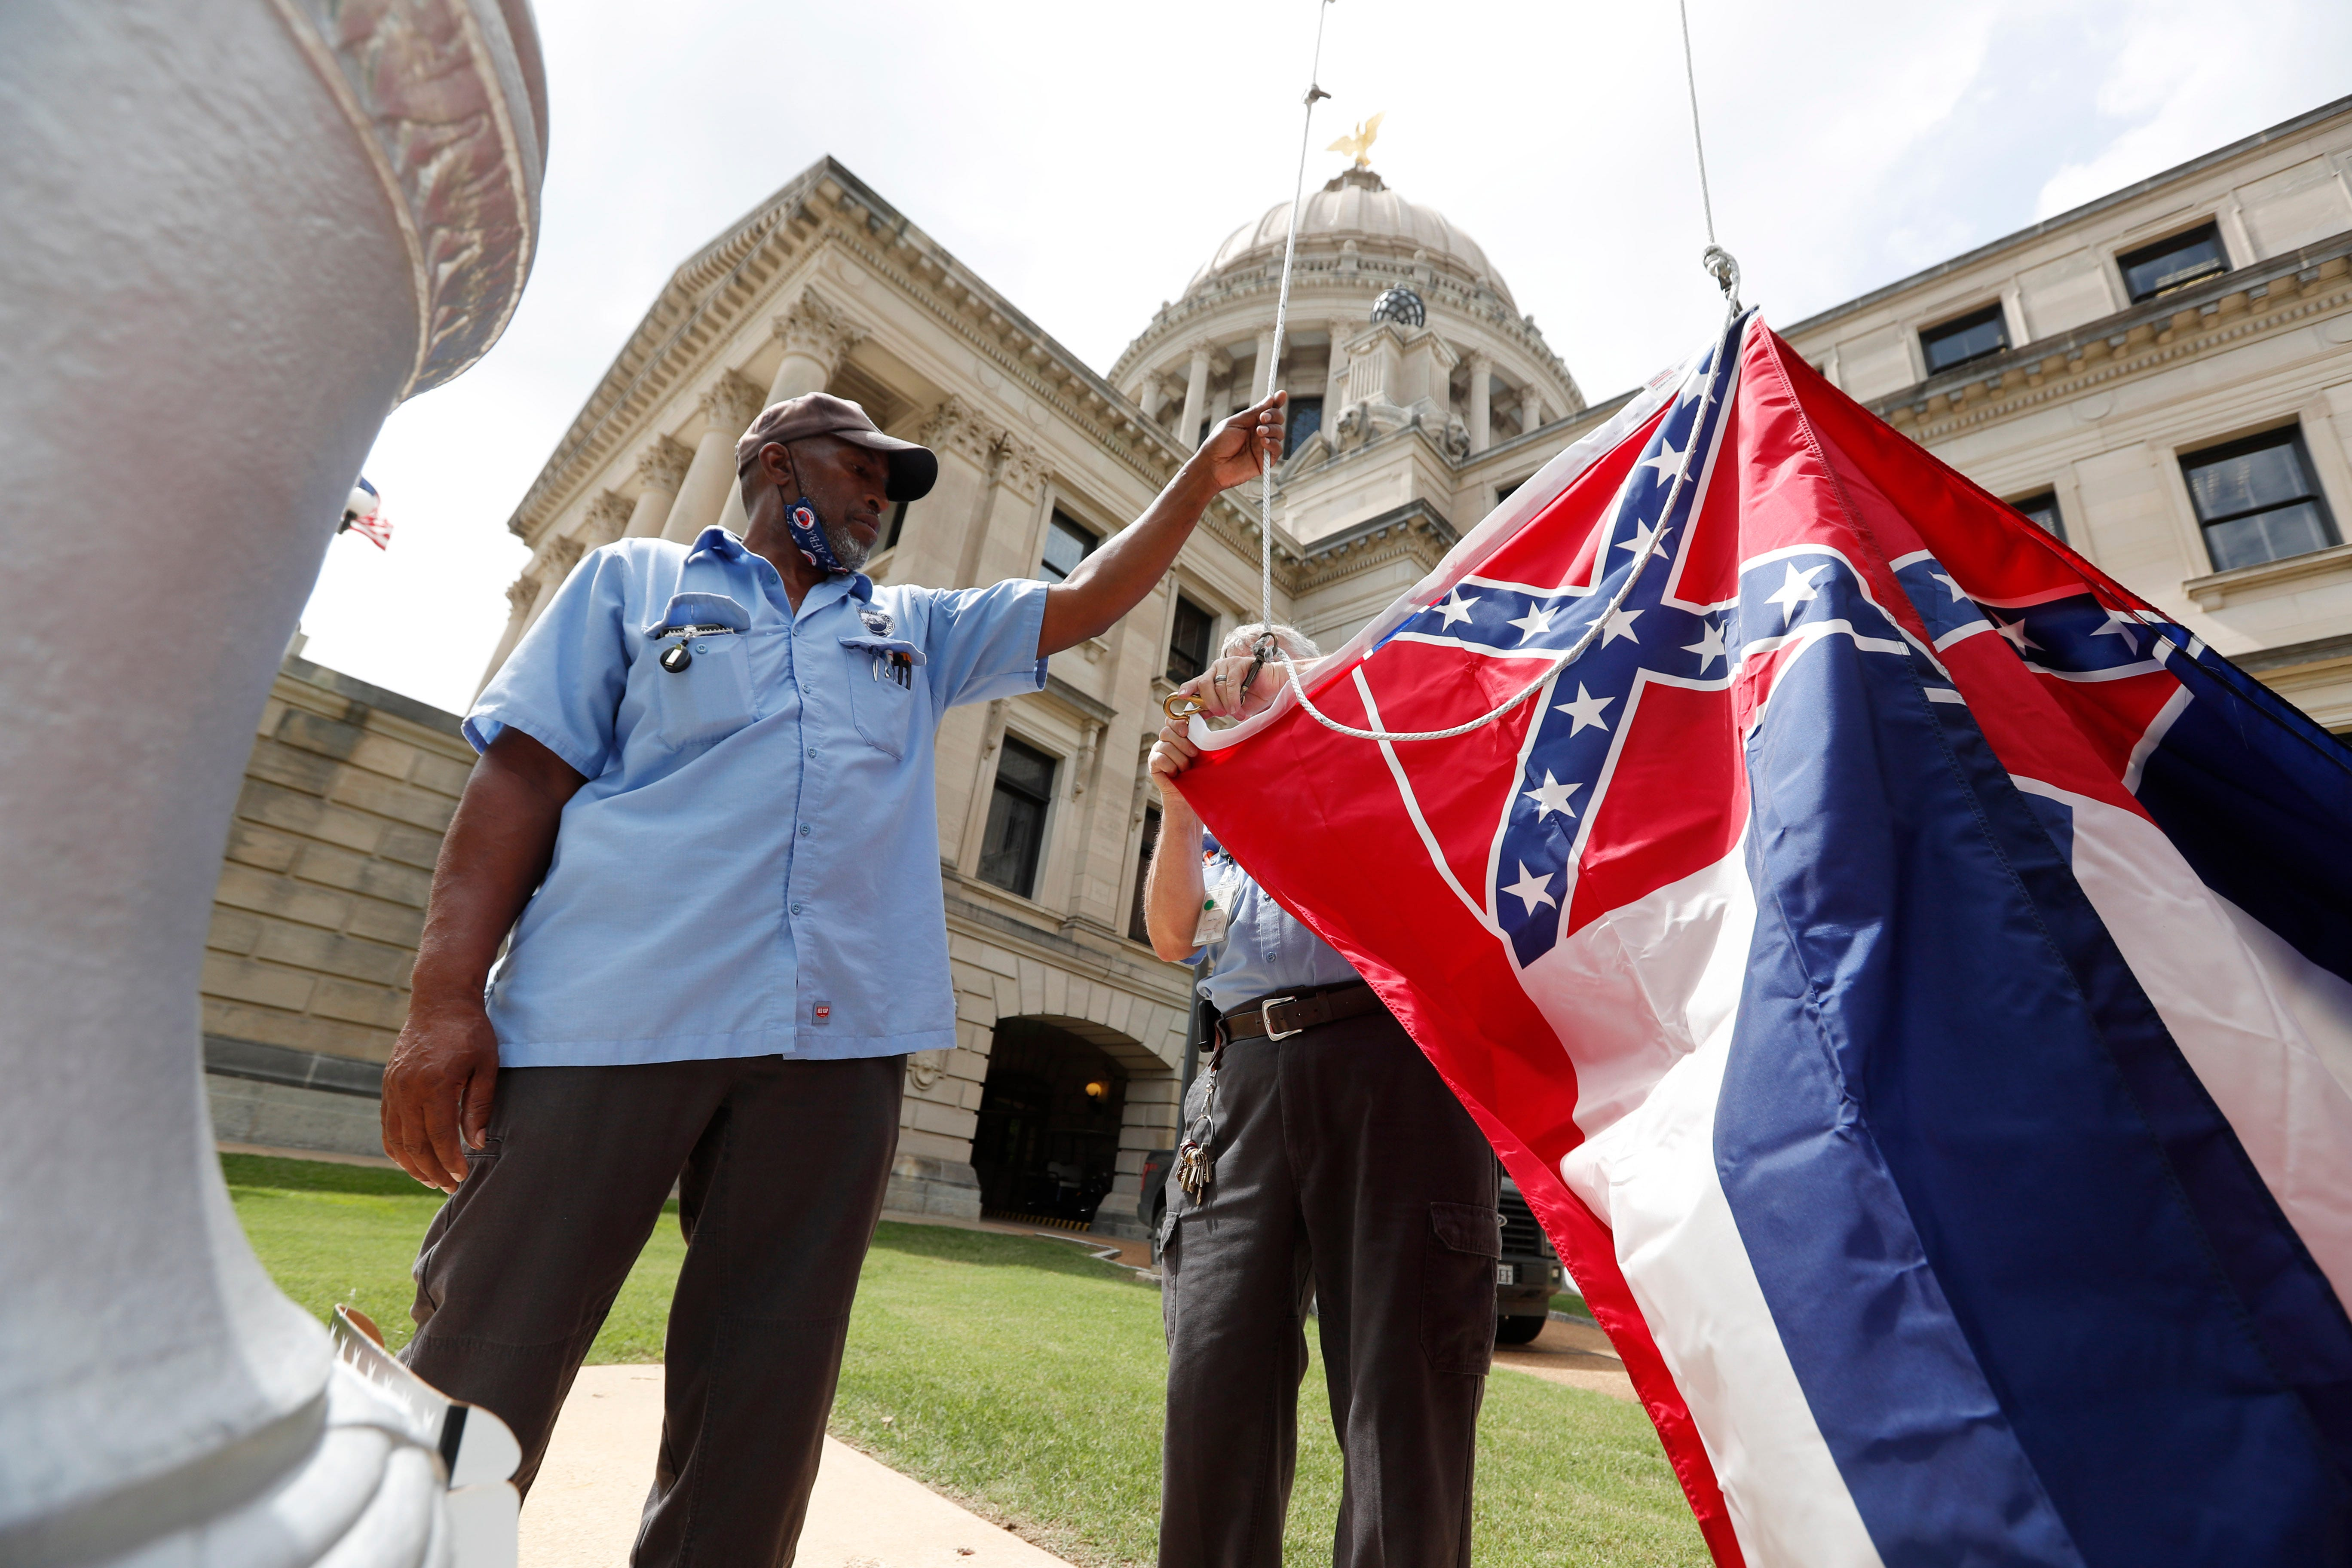 Mississippi Department of Finance and Administration employees Willie Townsend, left, and Joe Brown attach a state flag to the harness before raising it over the Capitol grounds in Jackson, Miss., on June 30. The two men raised about 100 flags, provided by the Secretary of State's office, for people or organizations that purchased a state flag that flew over the grounds. The state flag was altered in 1894 to feature the Confederate battle flag. Voters in November will decide on a new flag.